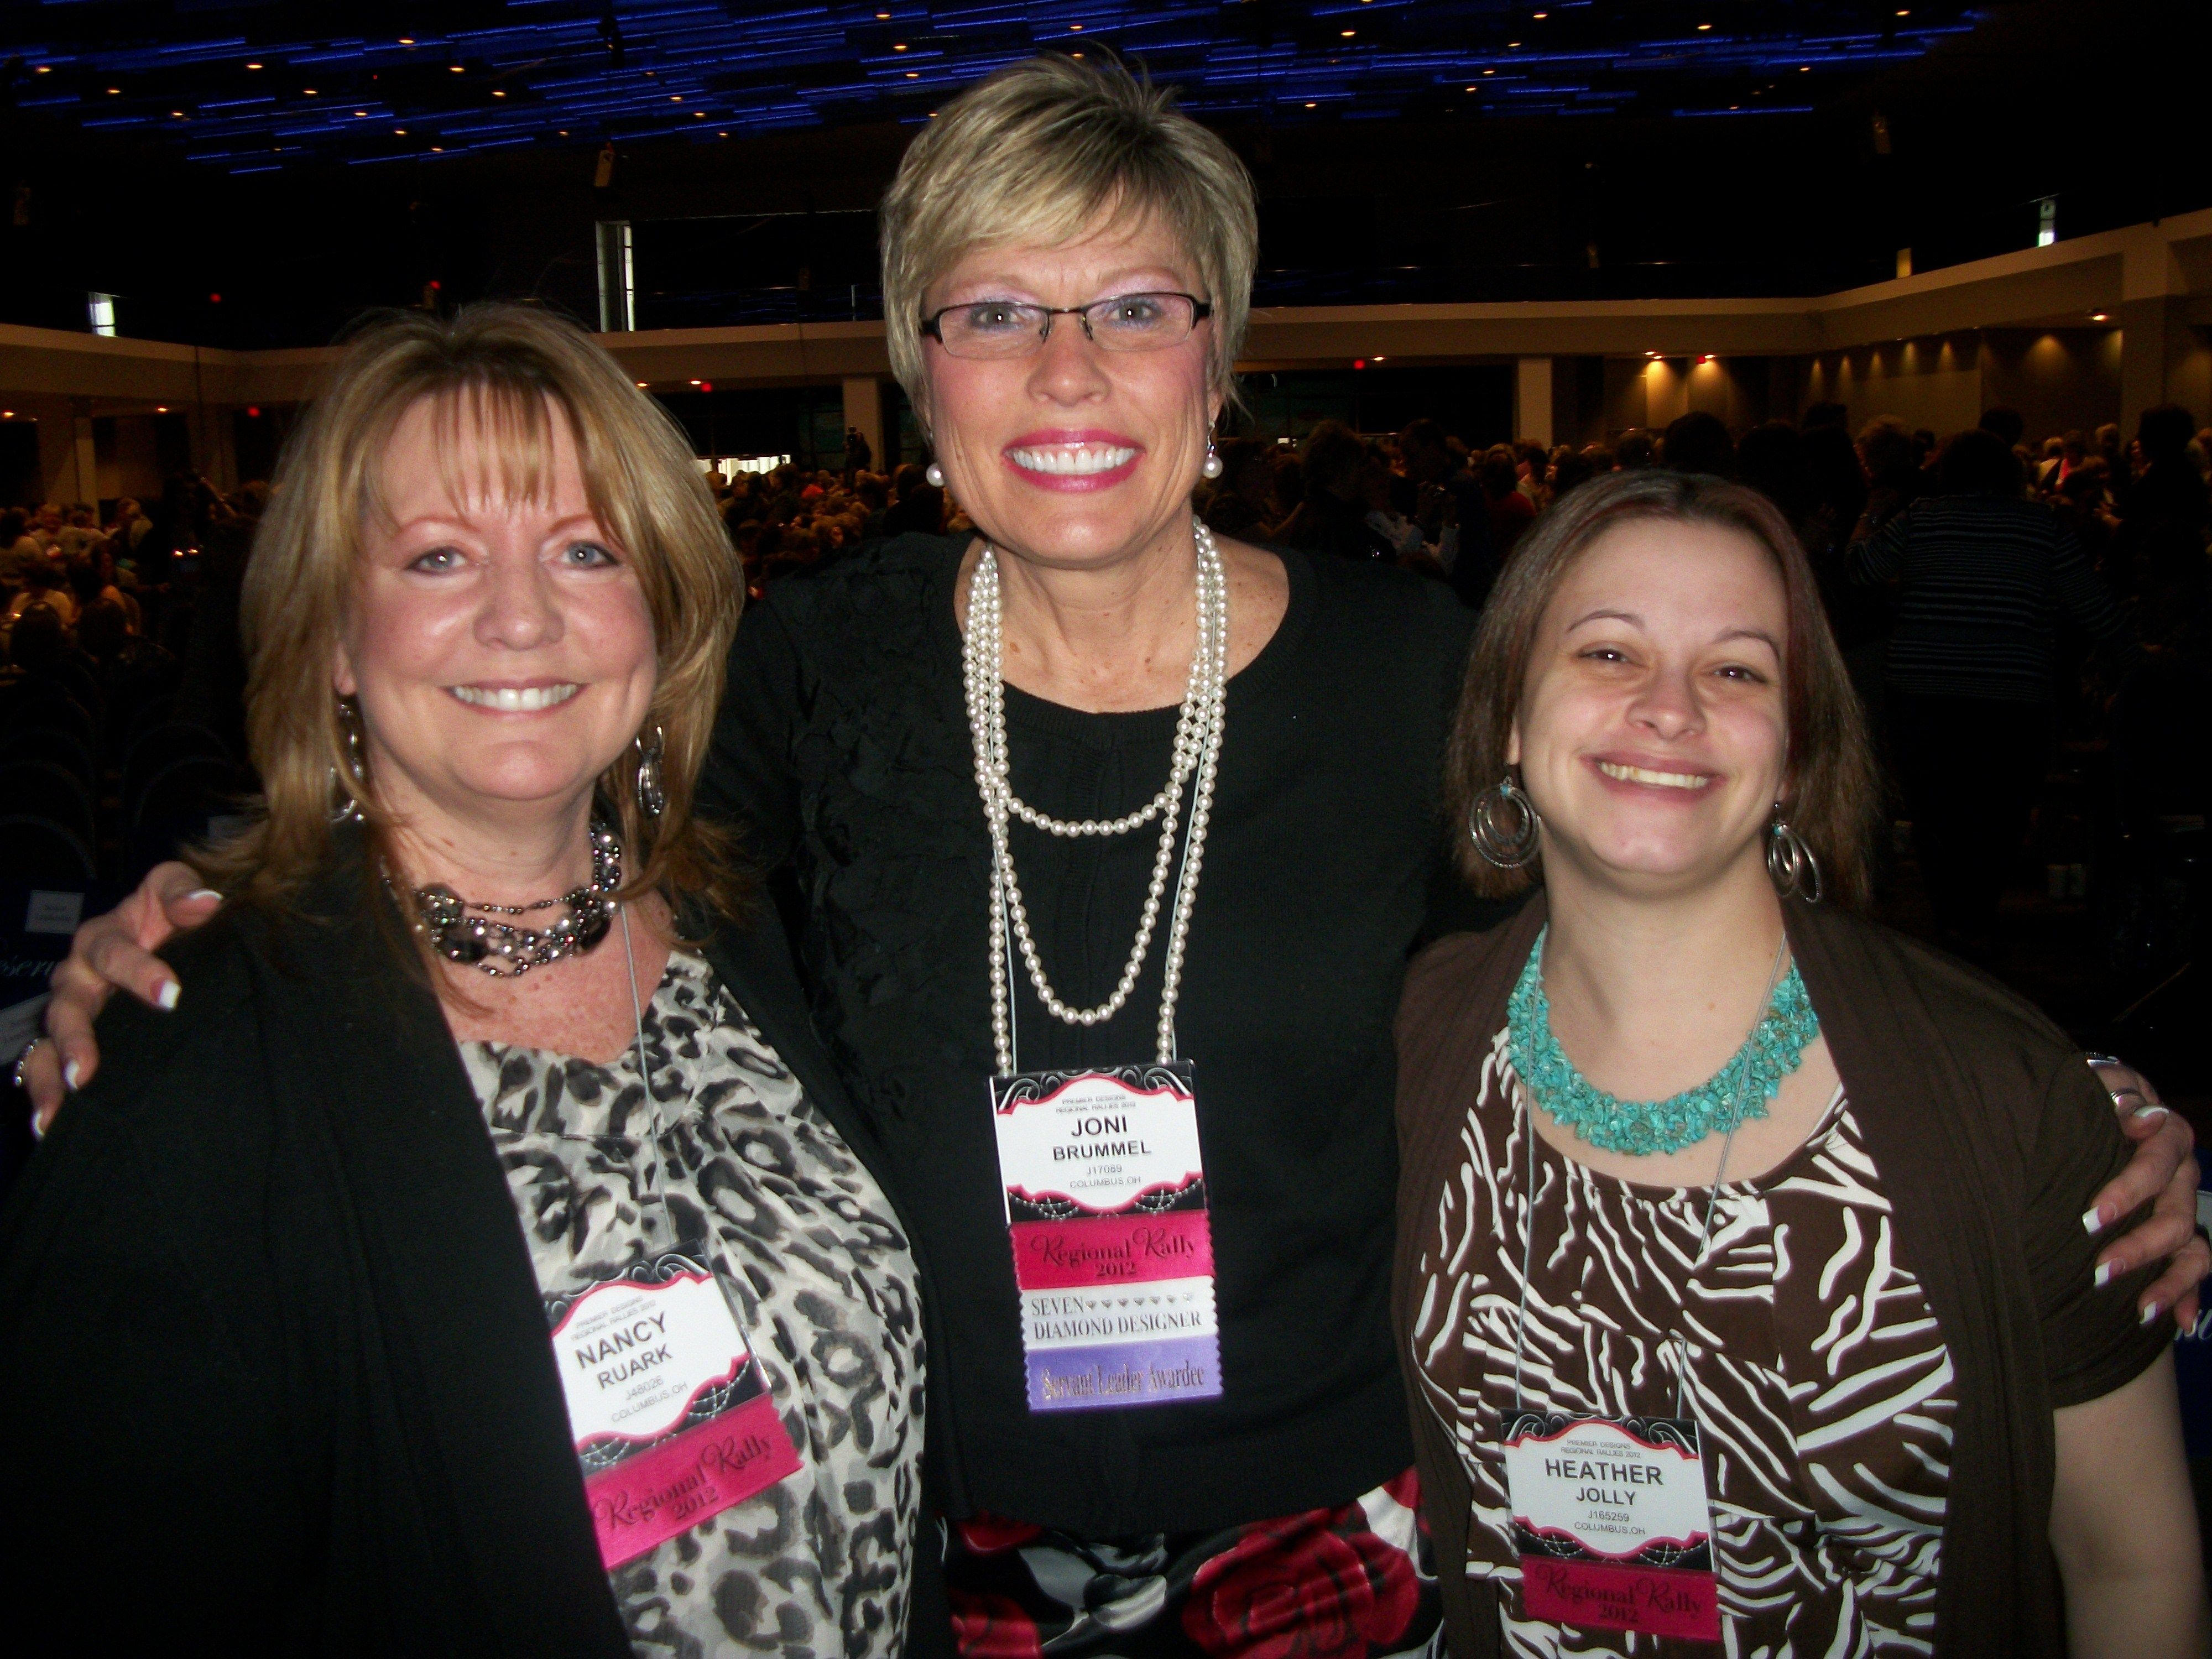 Me with my Premier Mom and Joni Brummel